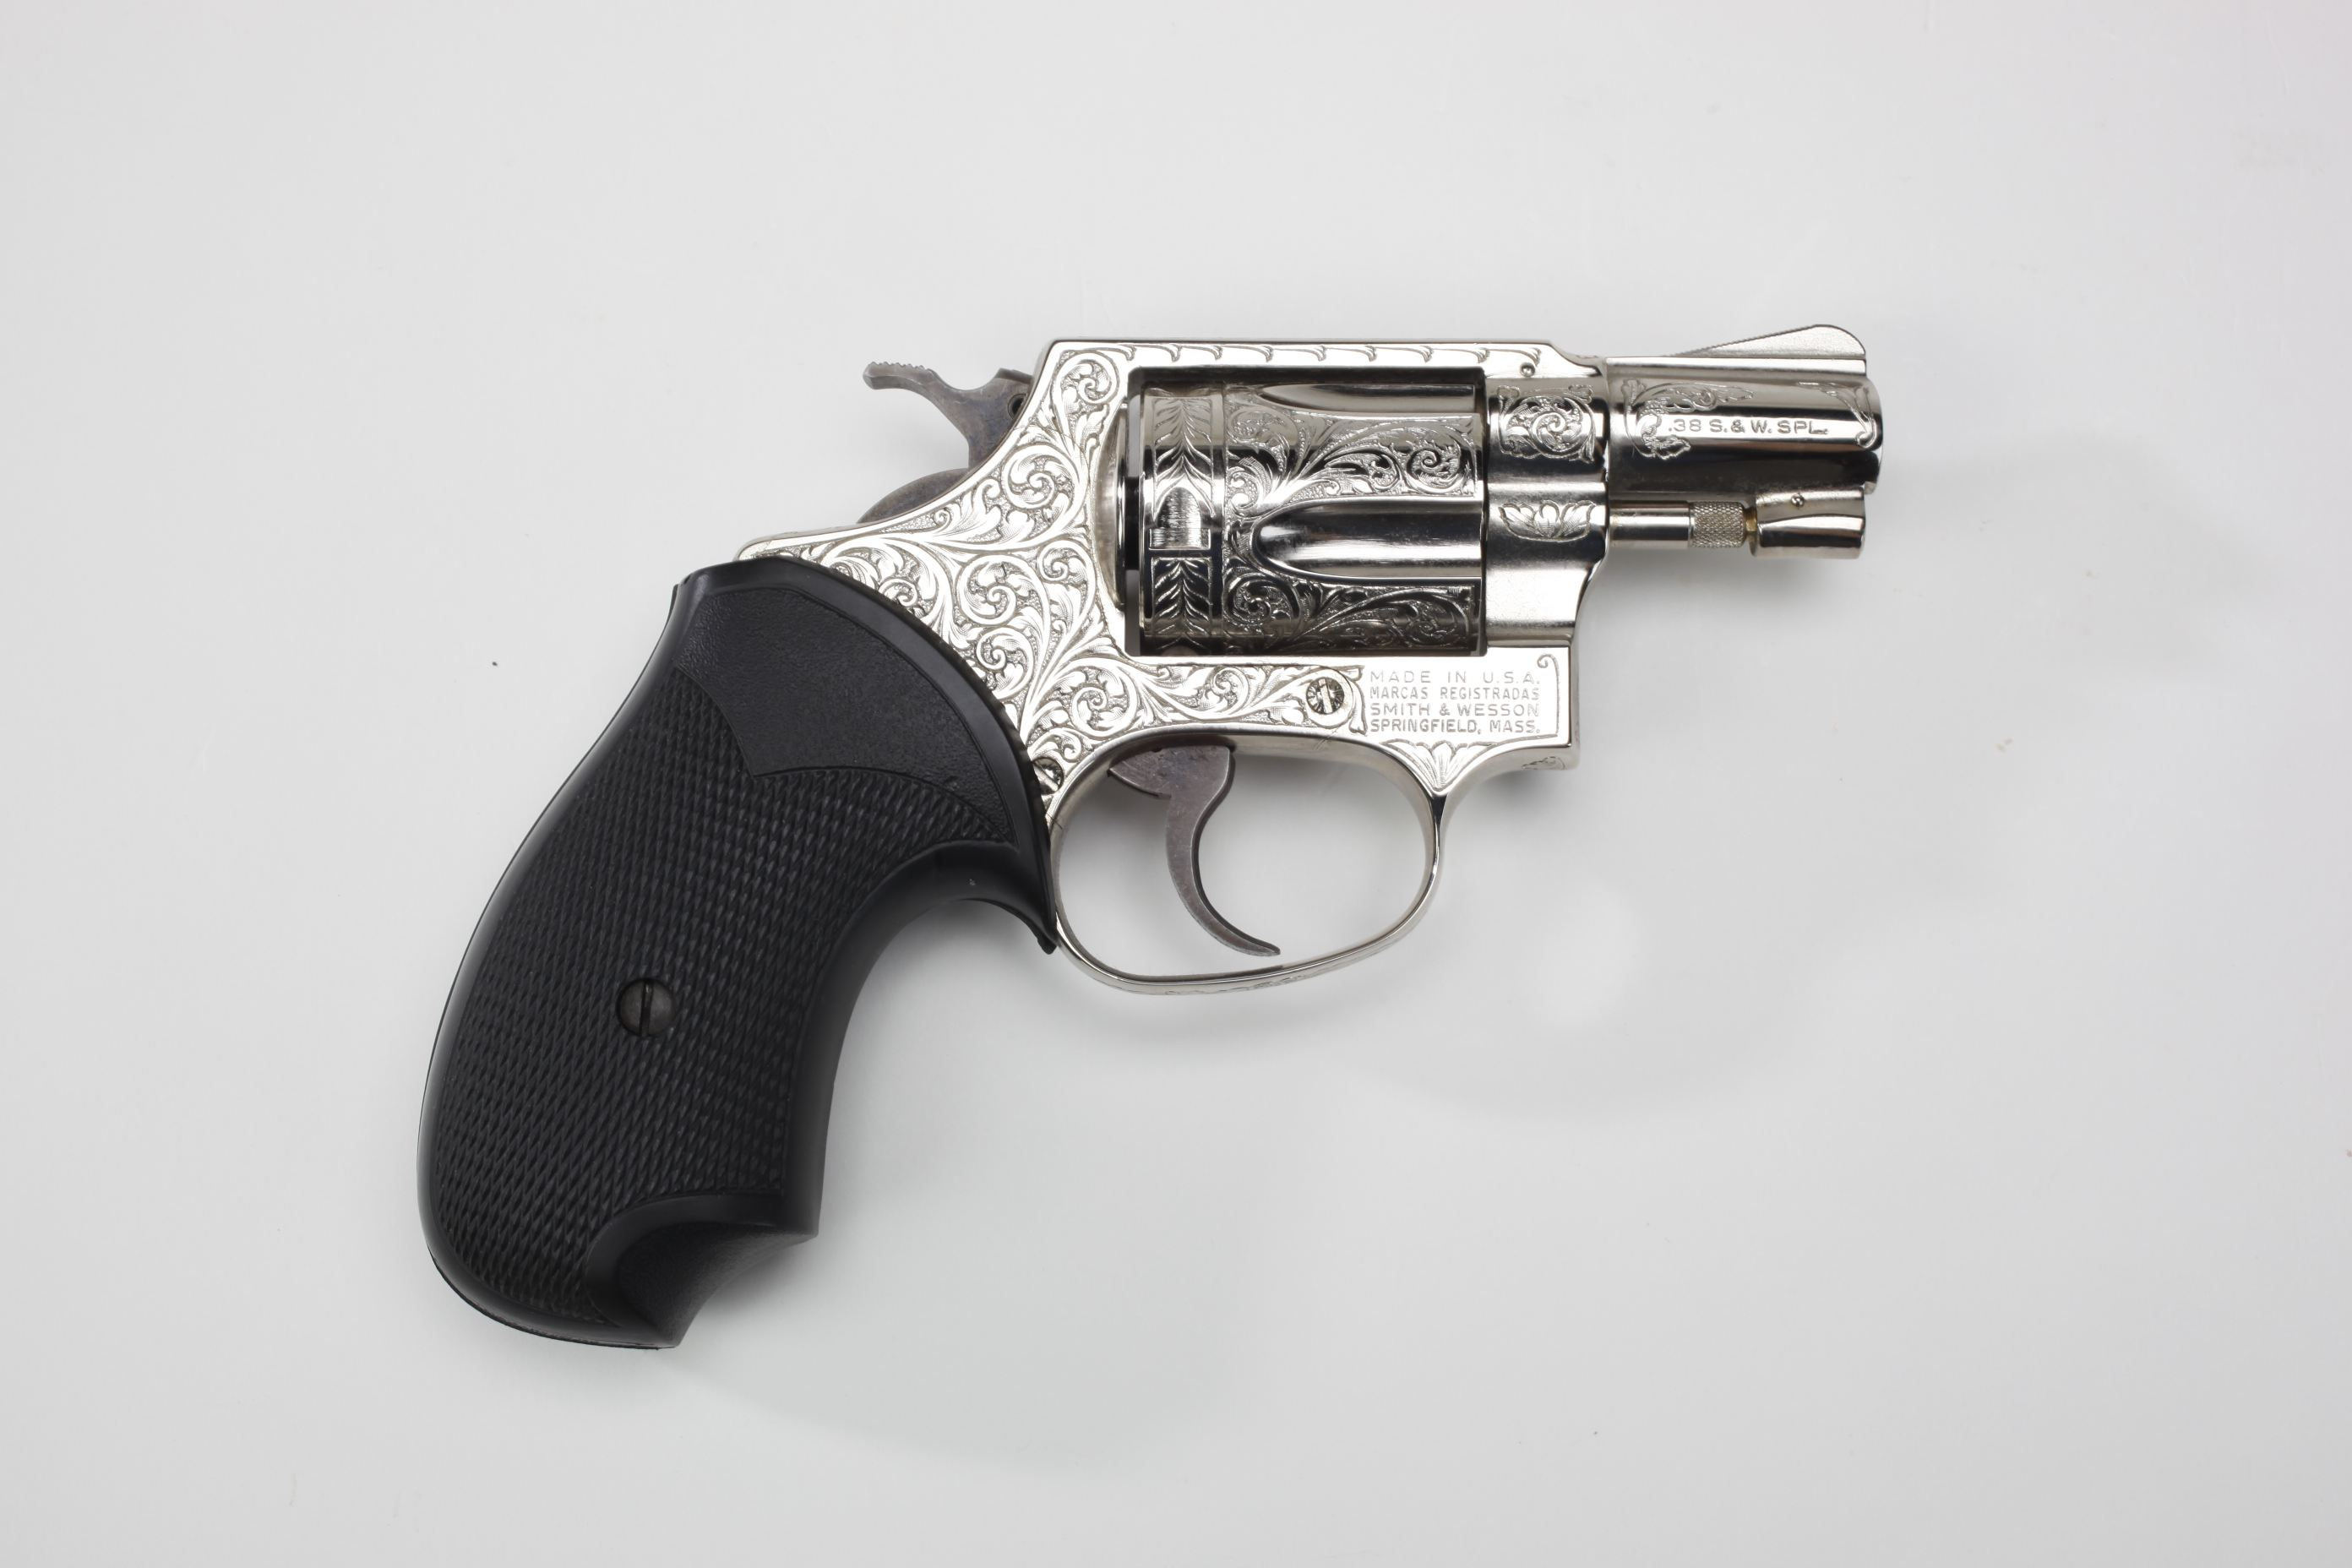 Smith & Wesson Model 36 Double-Action Revolver w/ Pachmayr grip panels